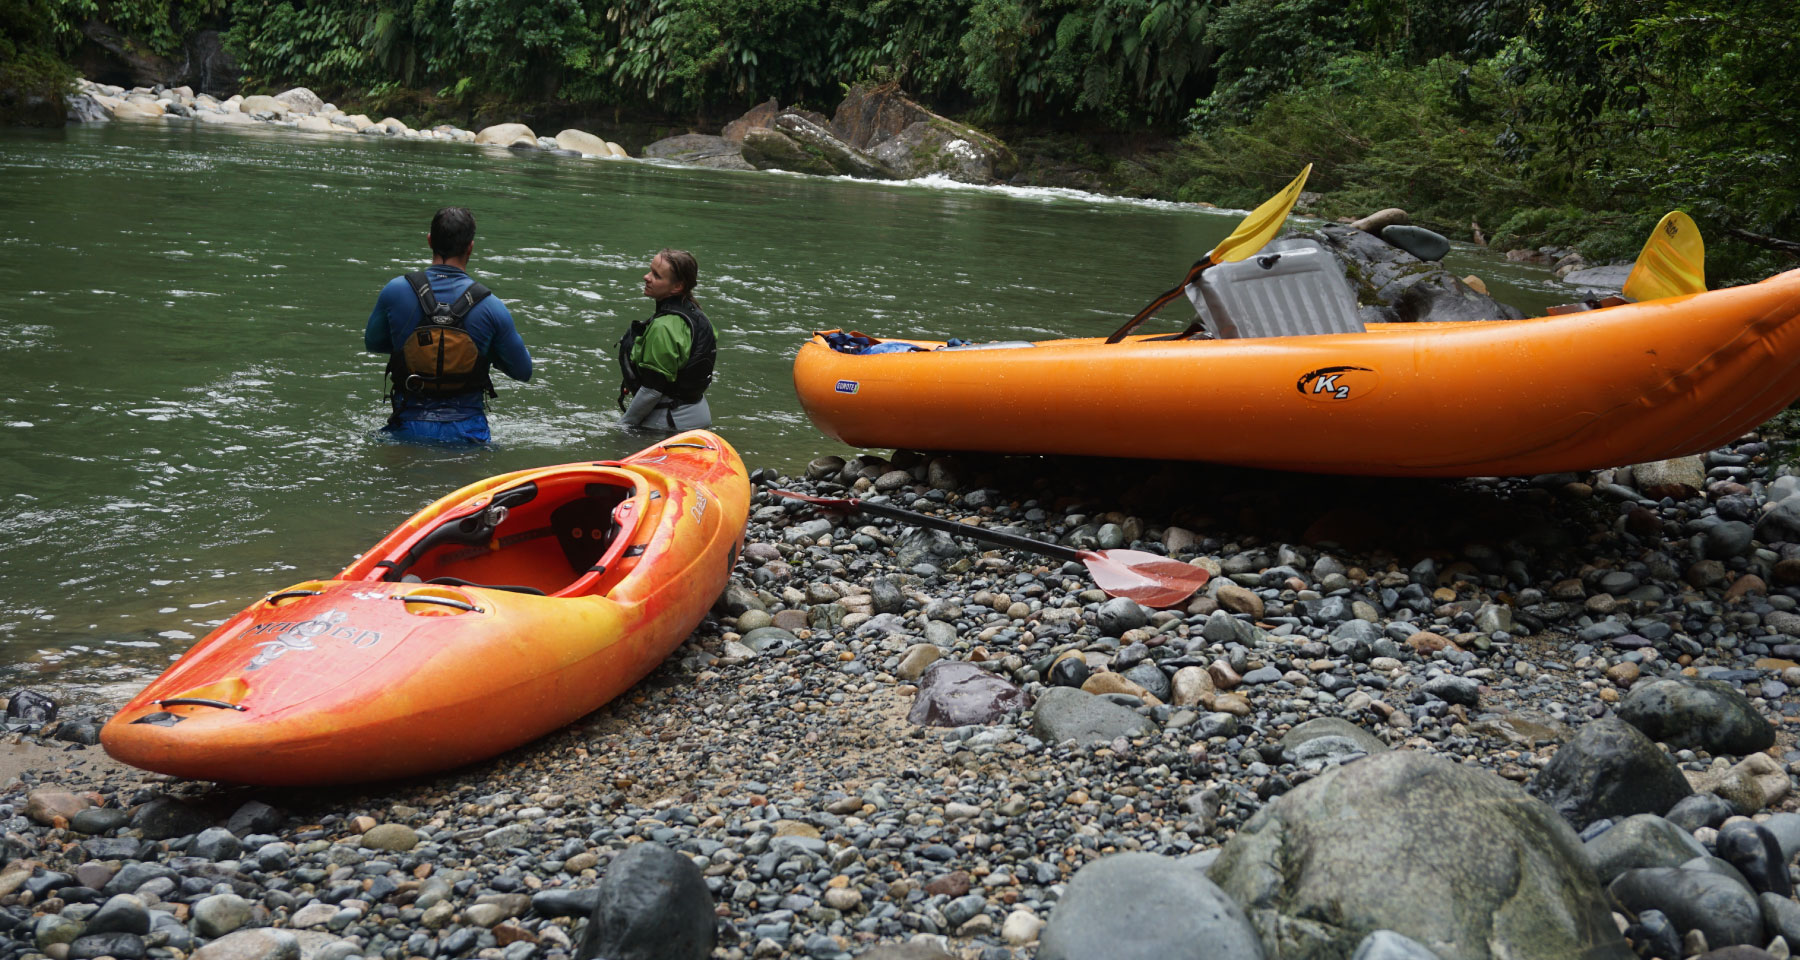 A duckie and a kayak in the shores of a river